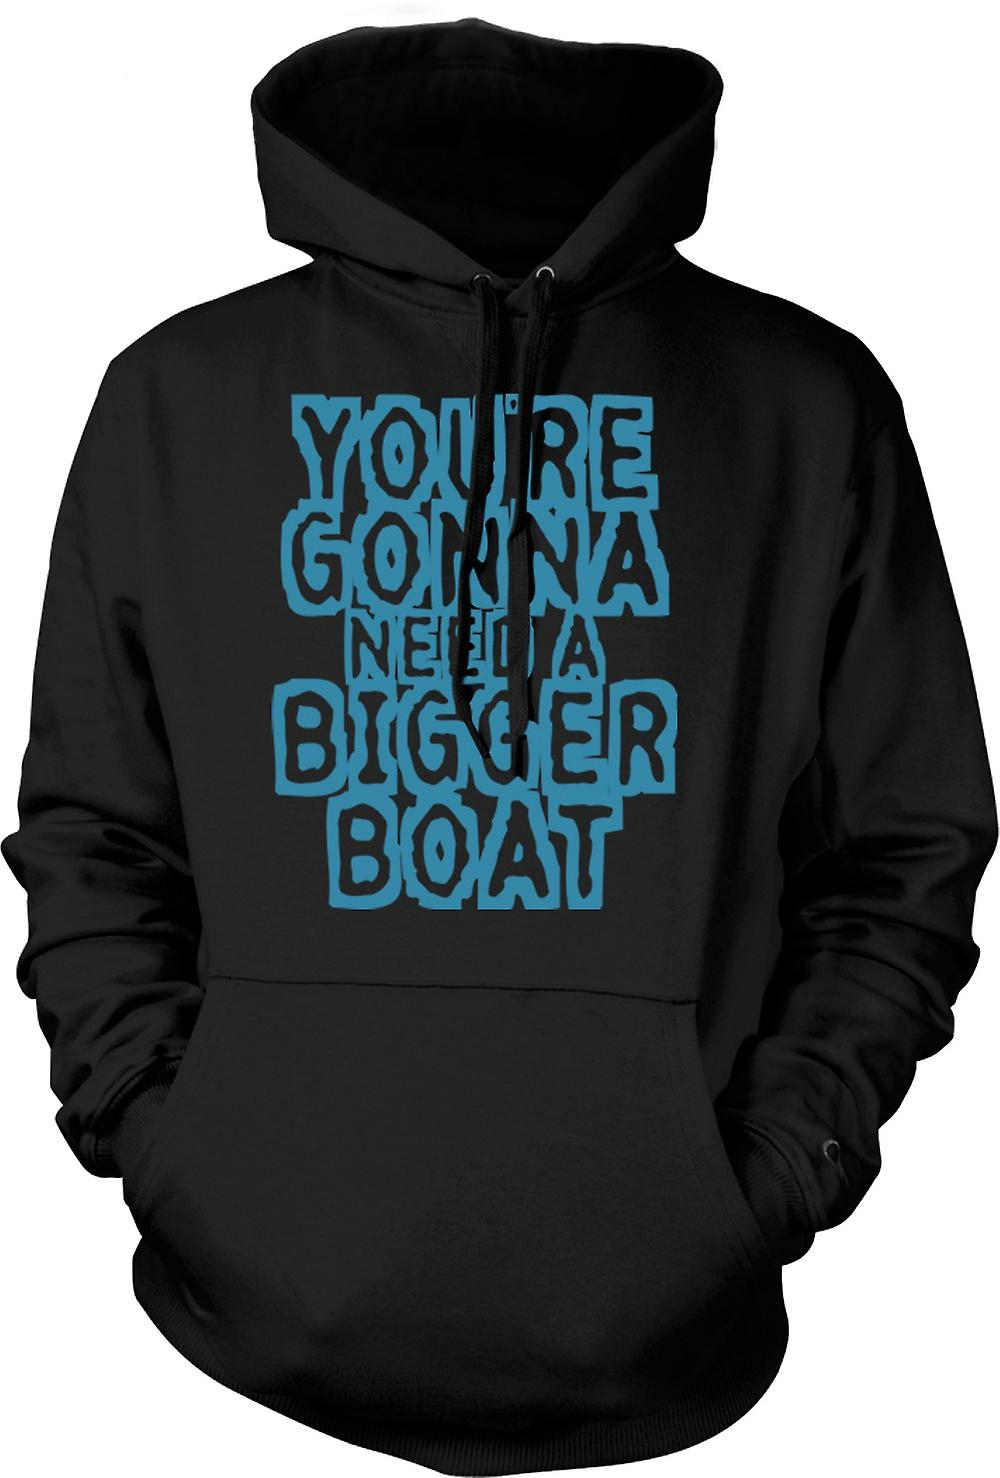 Mens Hoodie - You're Gonna Need A Bigger Boat - Funny Quote